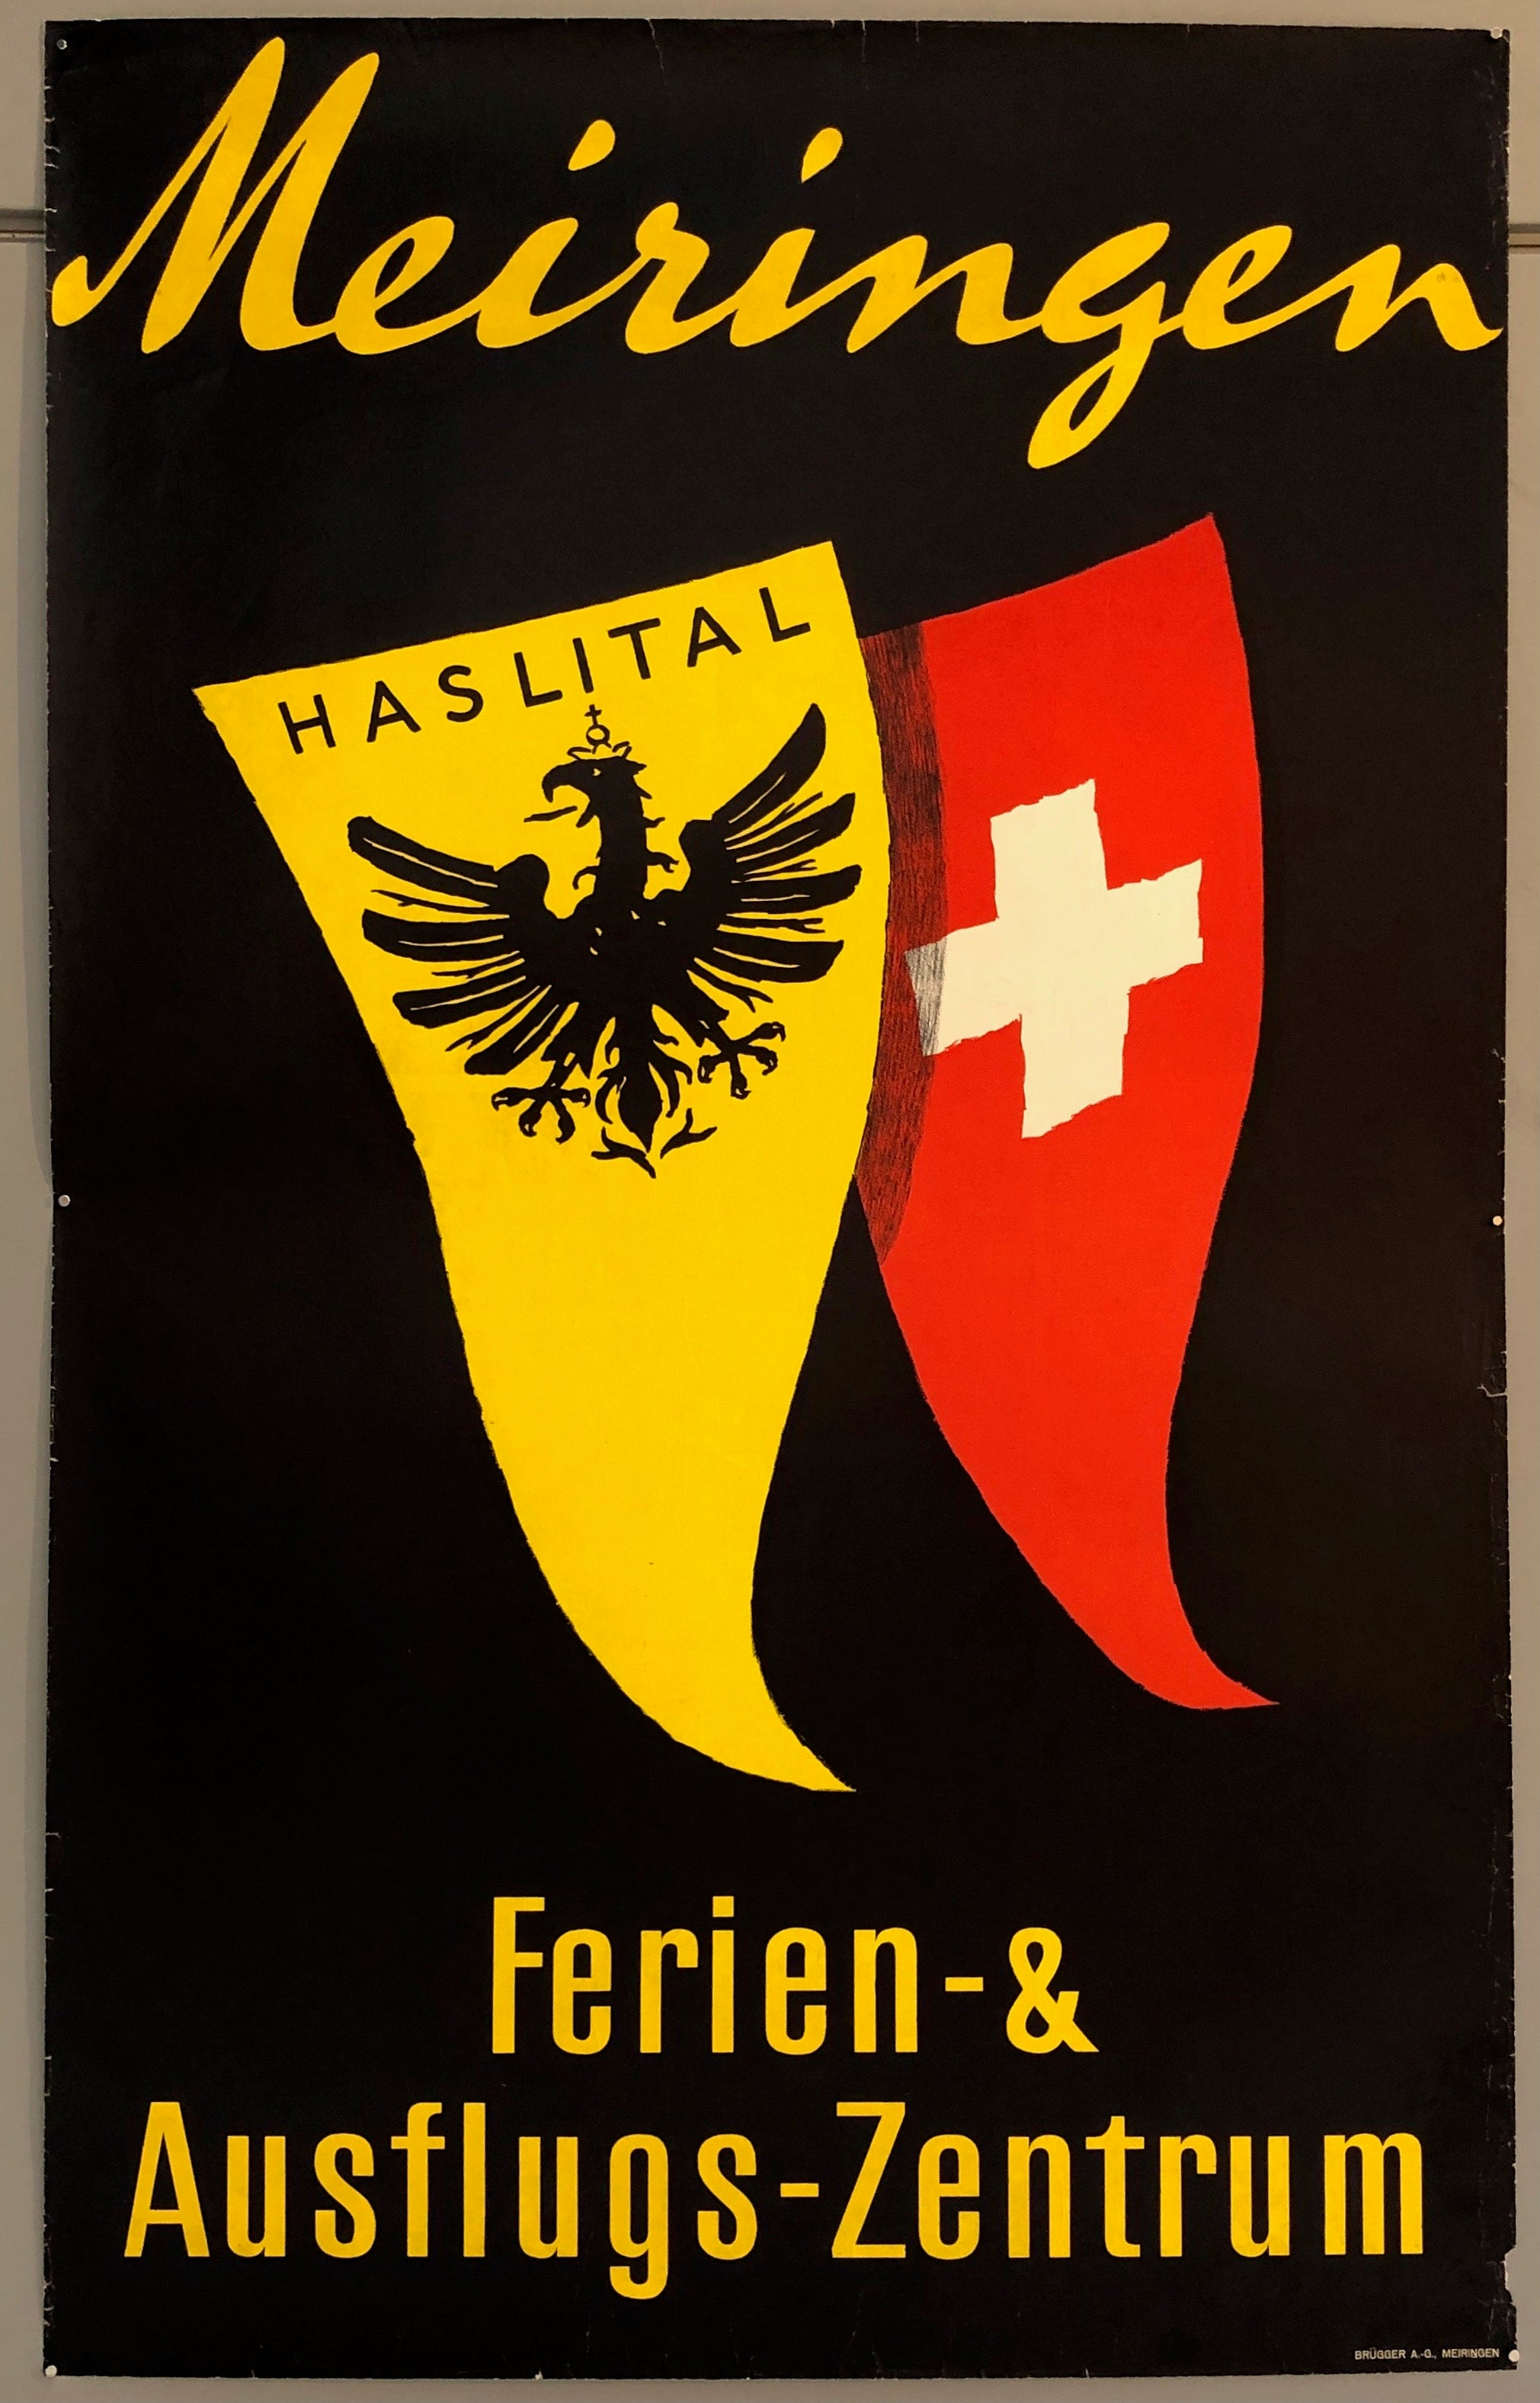 Poster featuring the Haslital coat of arms and the Swiss flag